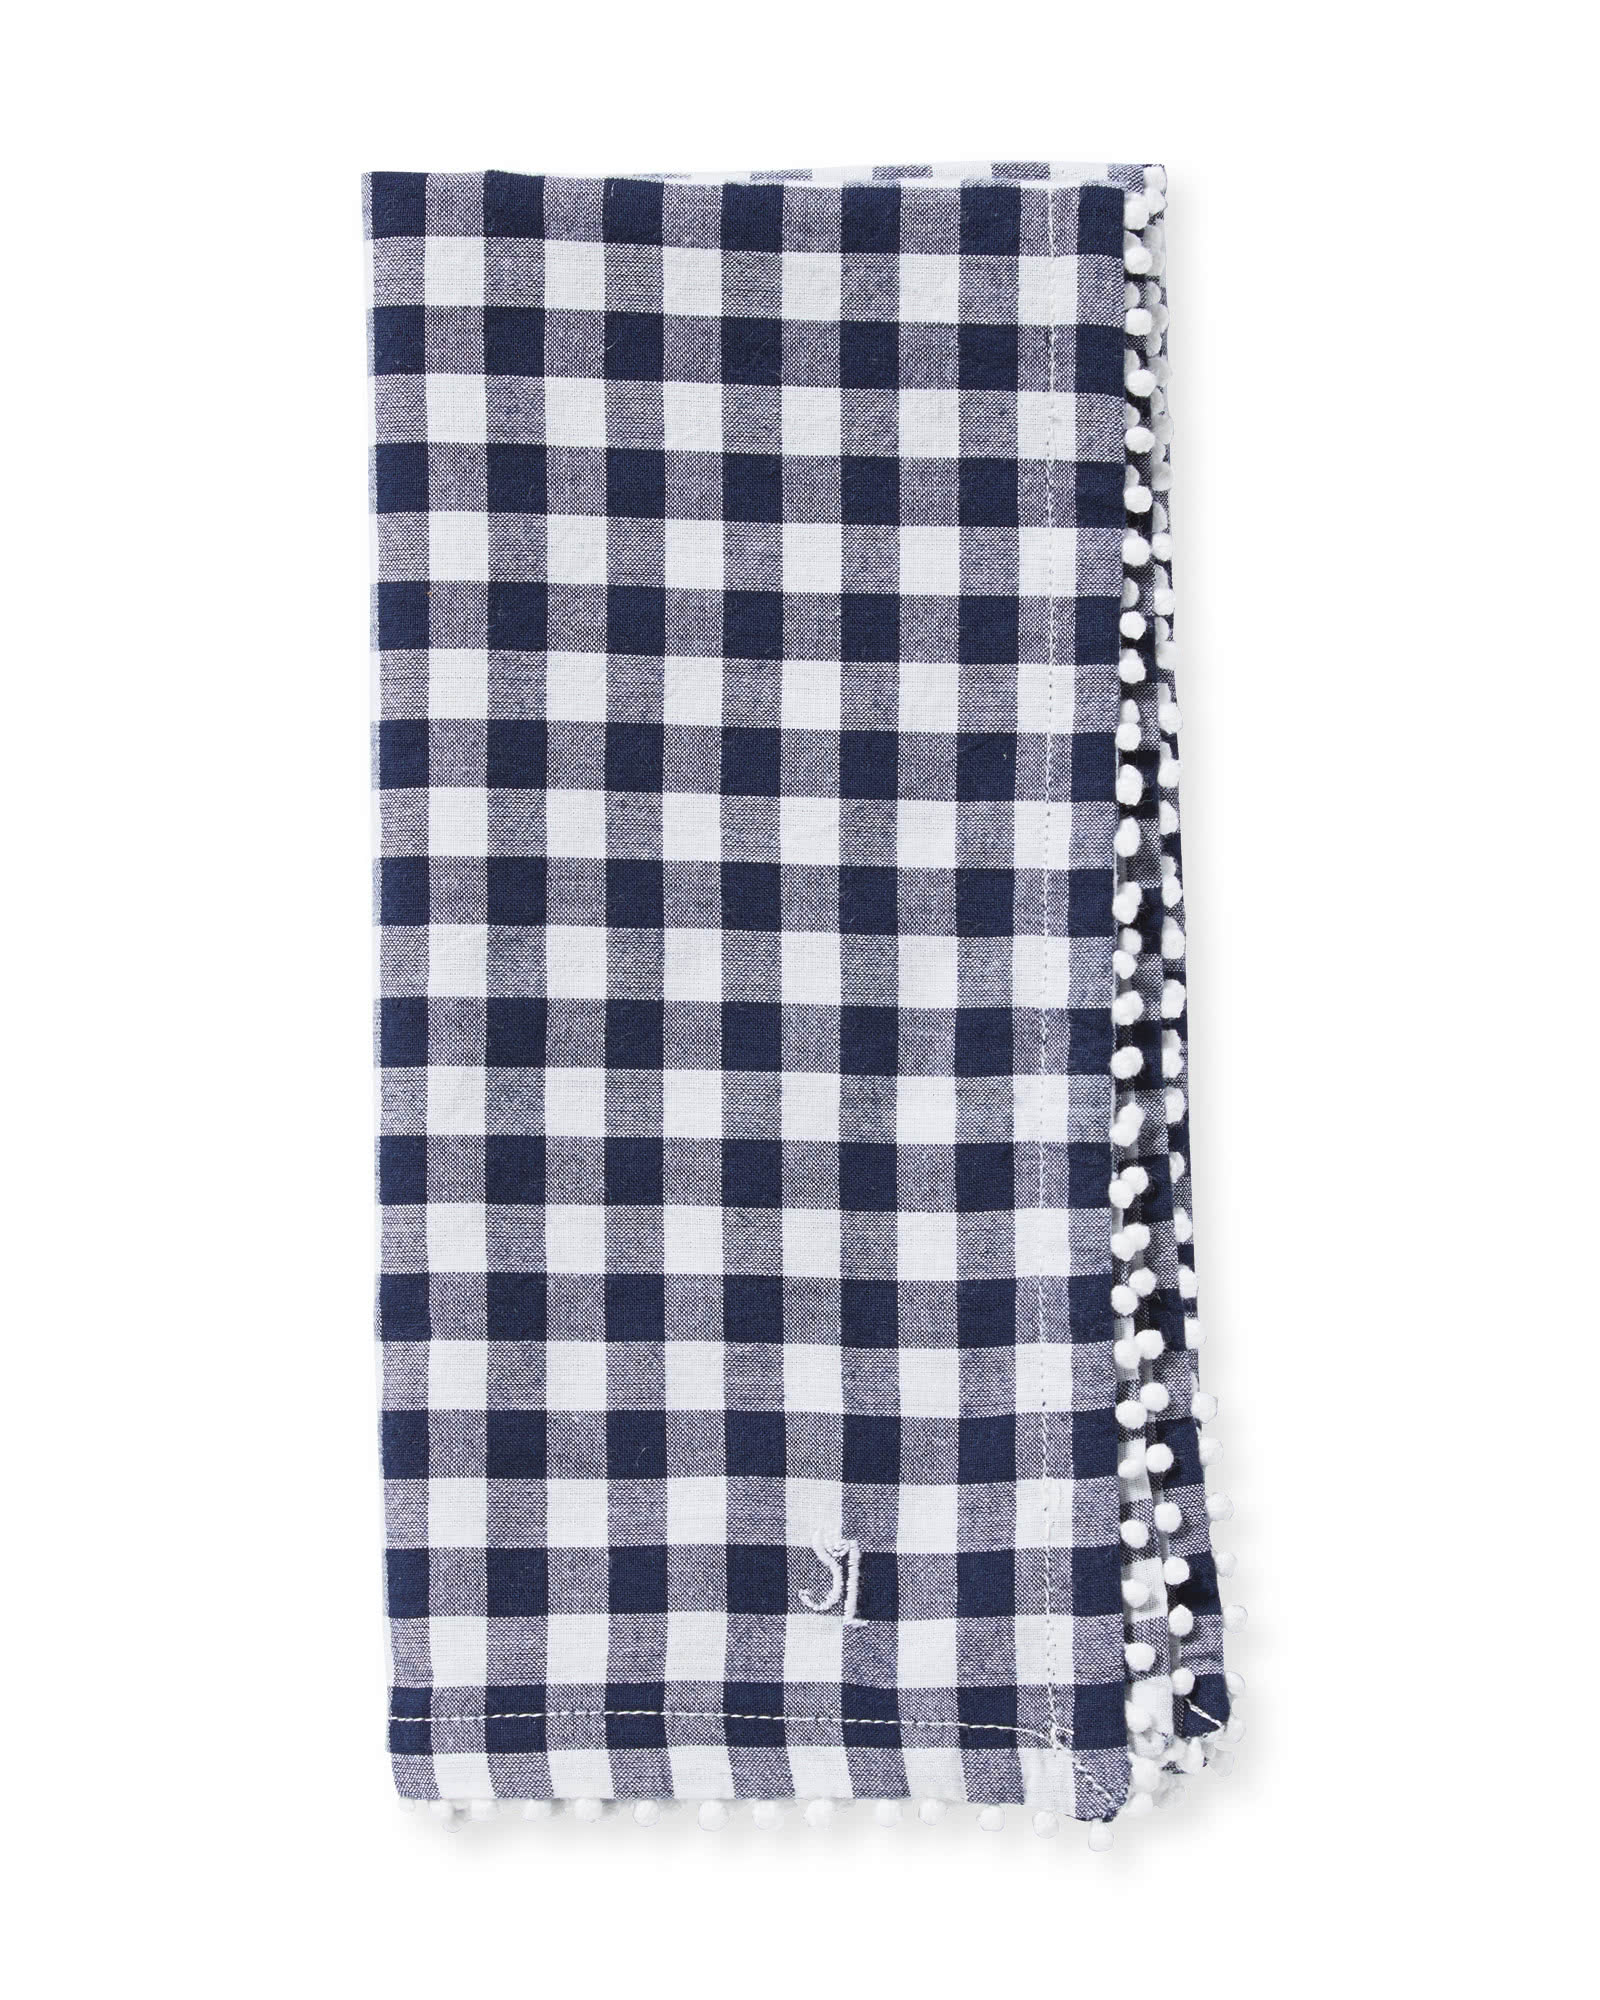 Napkin_Gingham_Navy_MV_Crop_SH.jpg